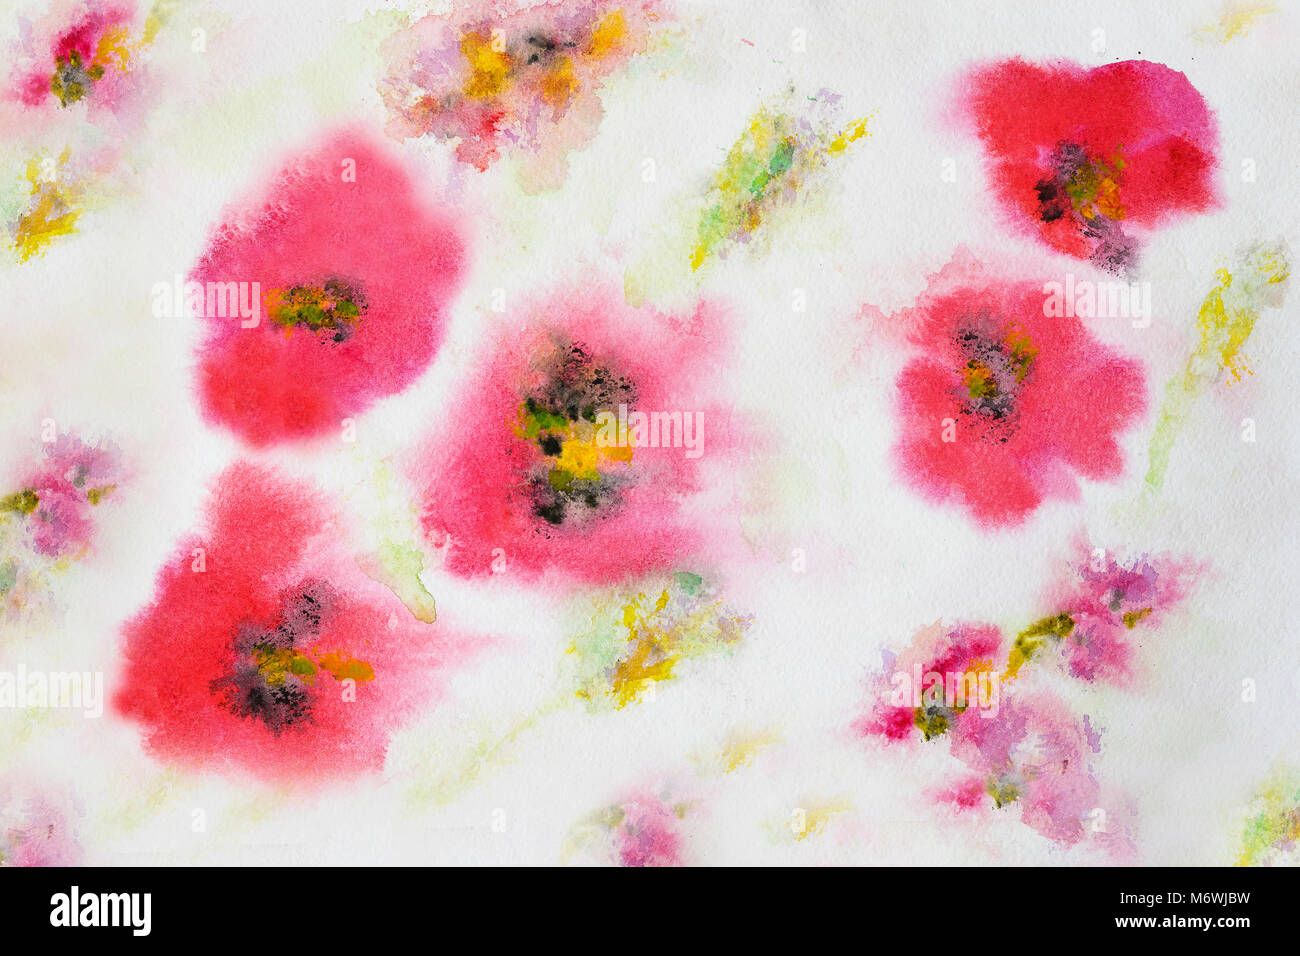 Poppy flower watercolor stock photos poppy flower watercolor stock poppy flower pattern hand painted watercolor paper grain texture art design banner mightylinksfo